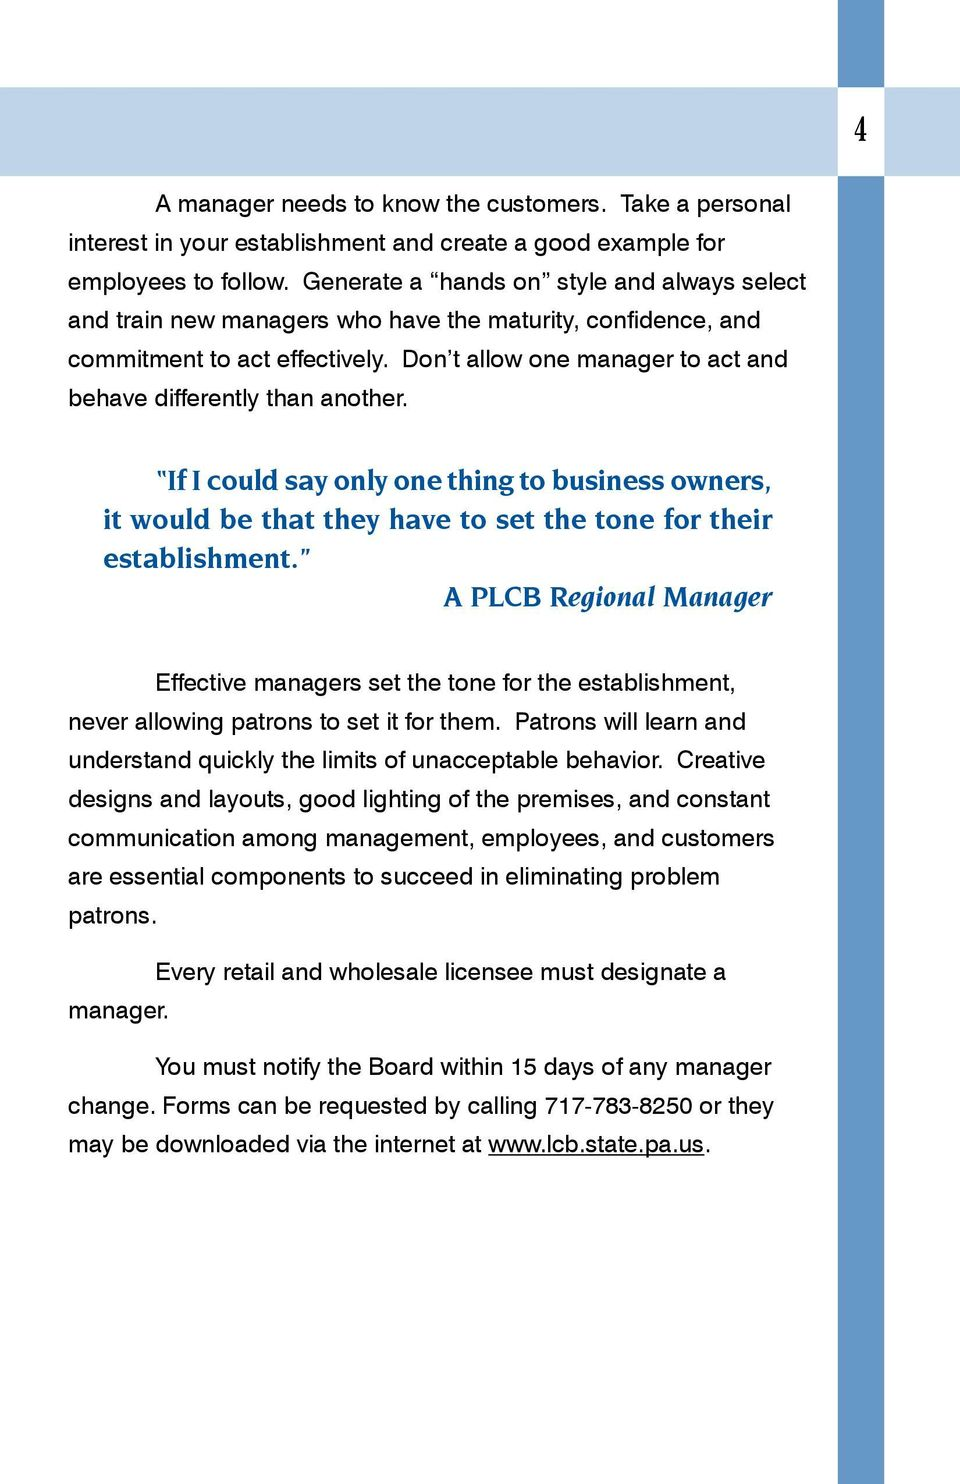 Don t allow one manager to act and behave differently than another. If I could say only one thing to business owners, it would be that they have to set the tone for their establishment.